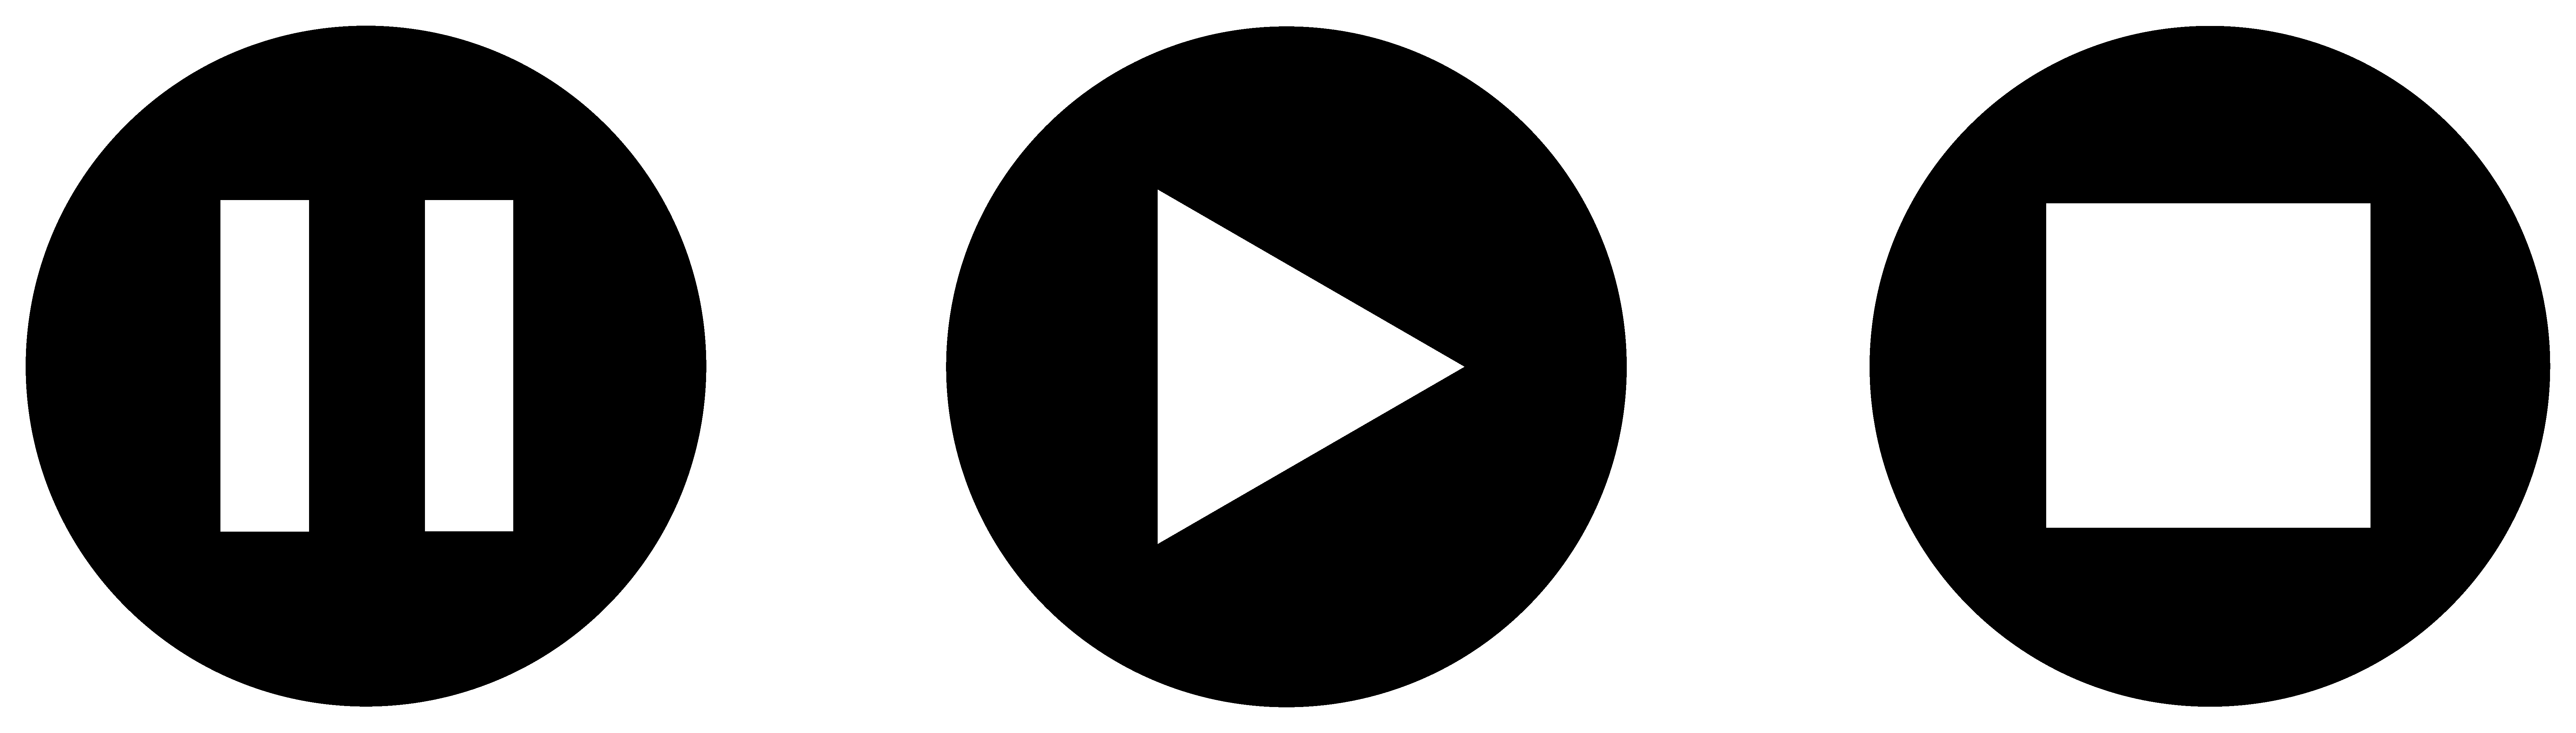 Play pause icon png. Button transparent pictures free